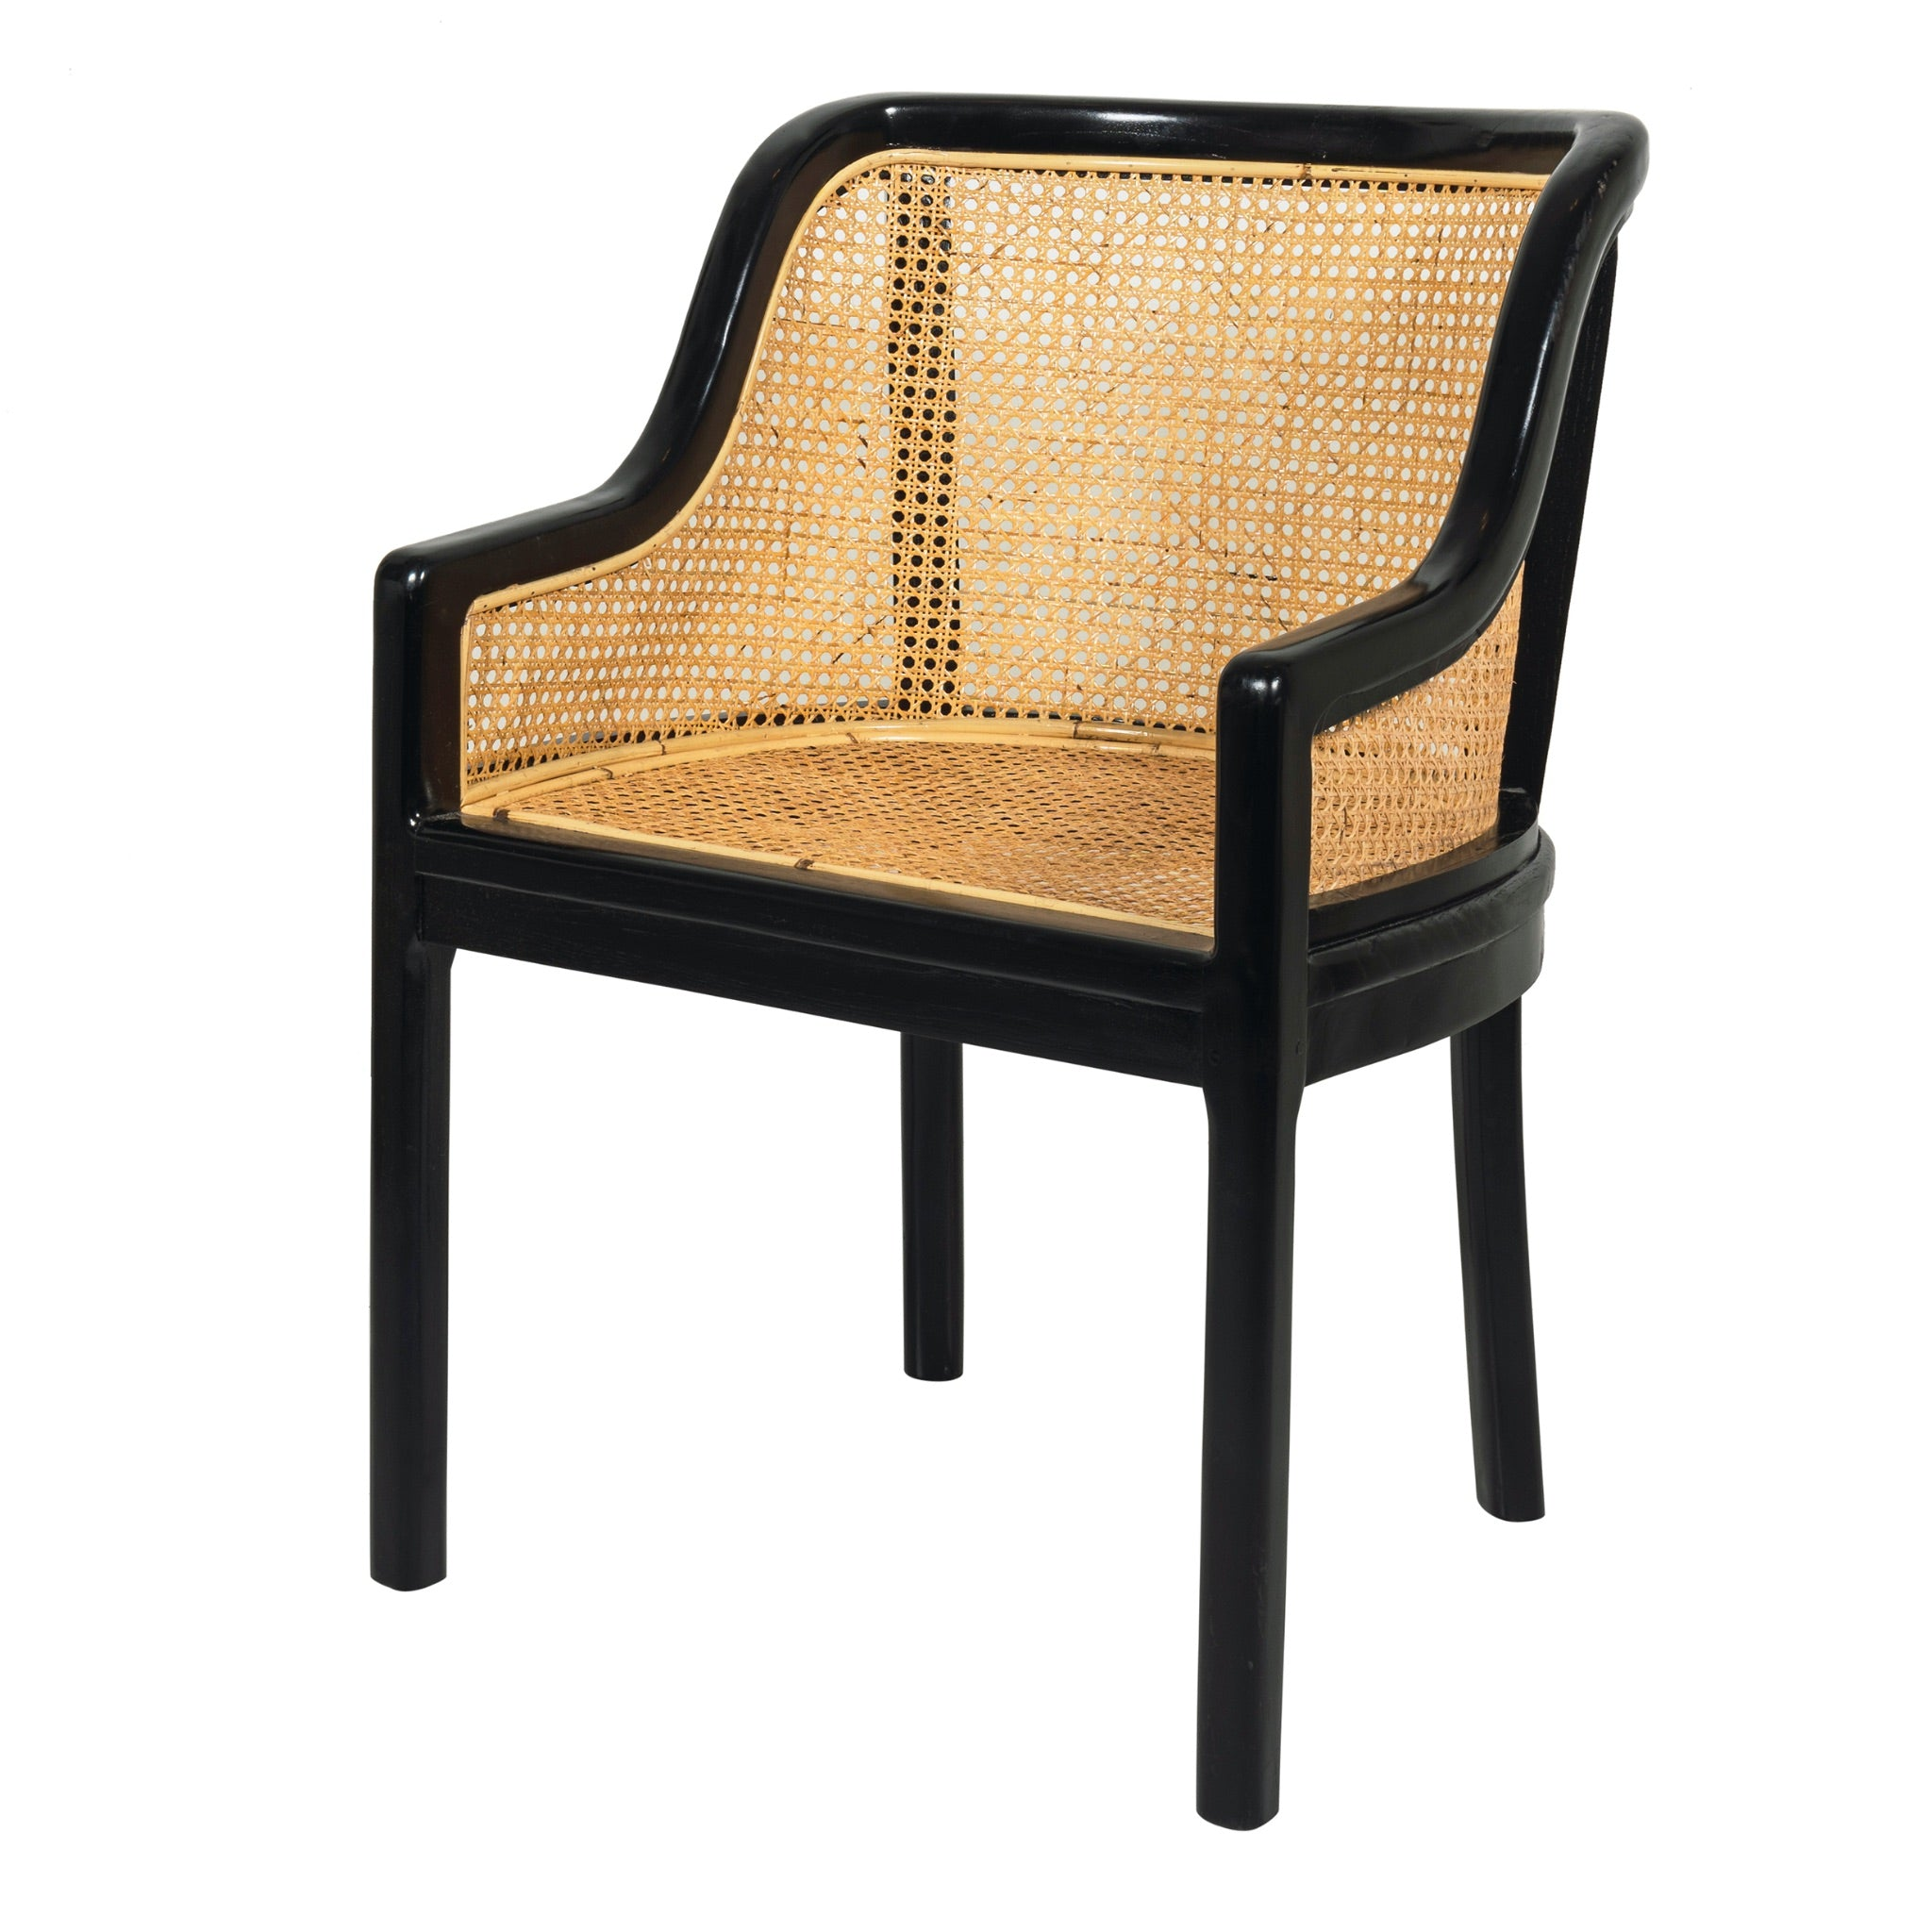 Black teak and woven rattan dining or occasional chair. Rattan on seat and back. classic colonial design